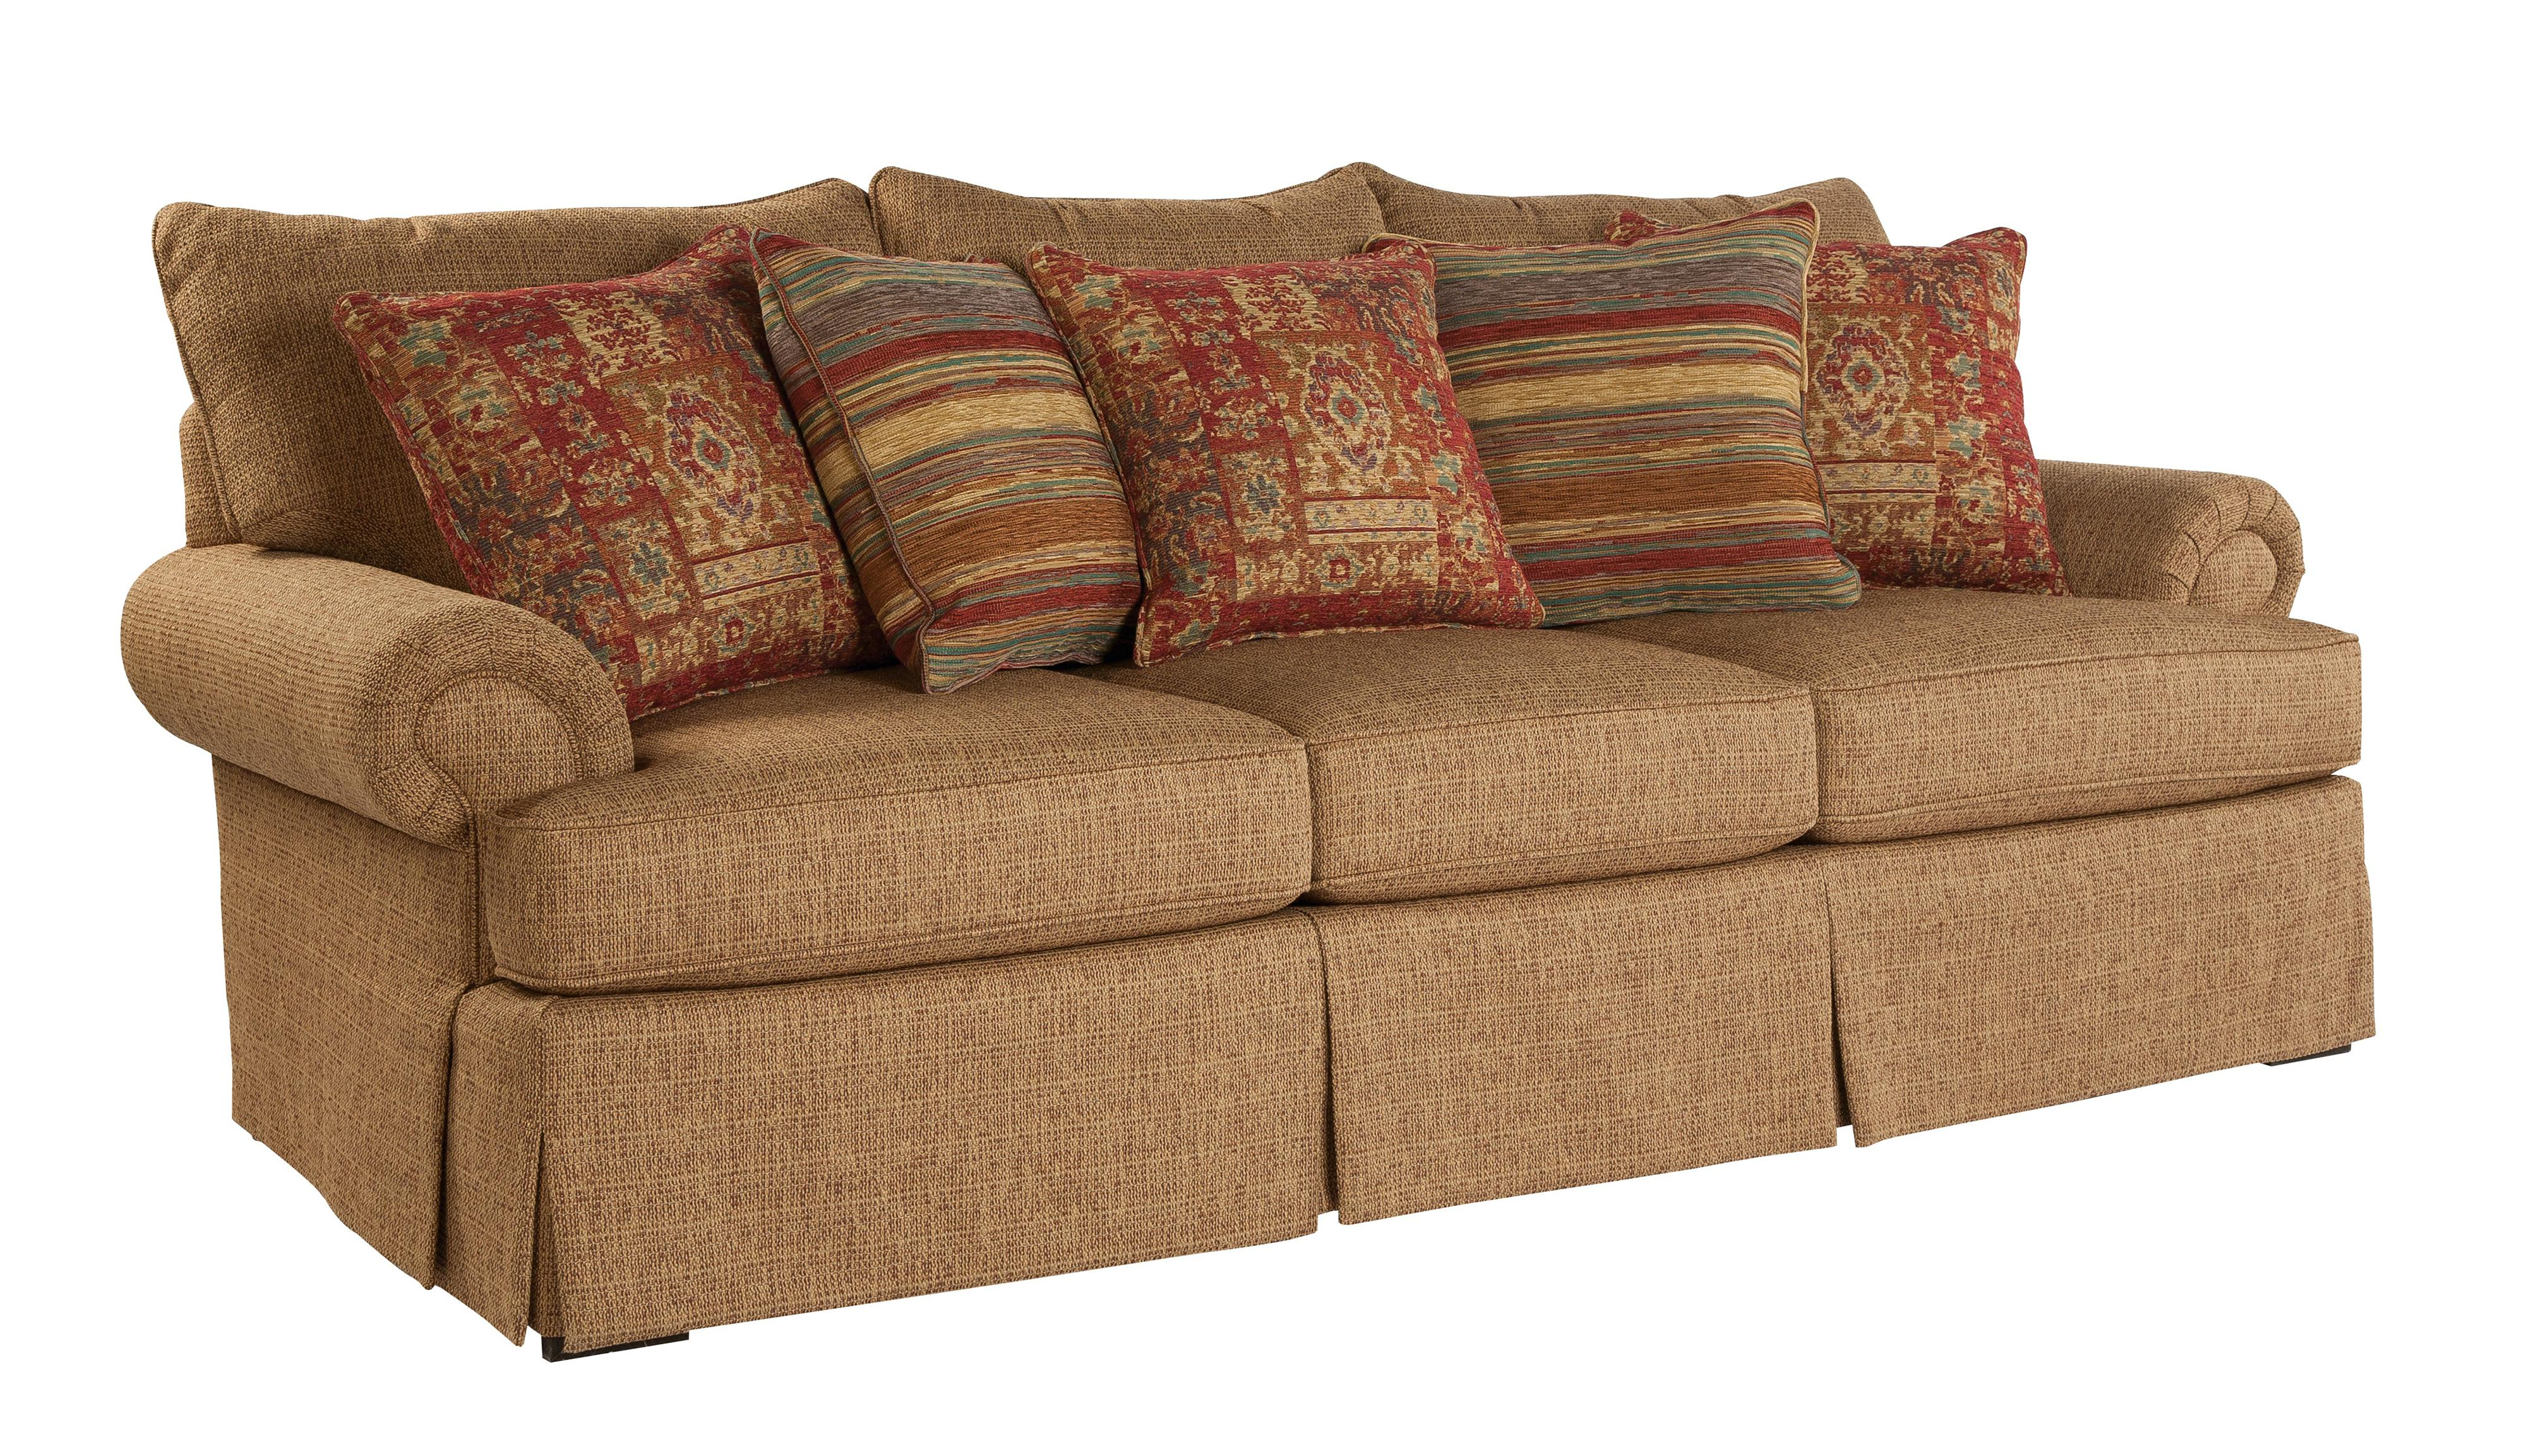 Loose Pillow Back Sofa with Rolled Arms and Skirt by